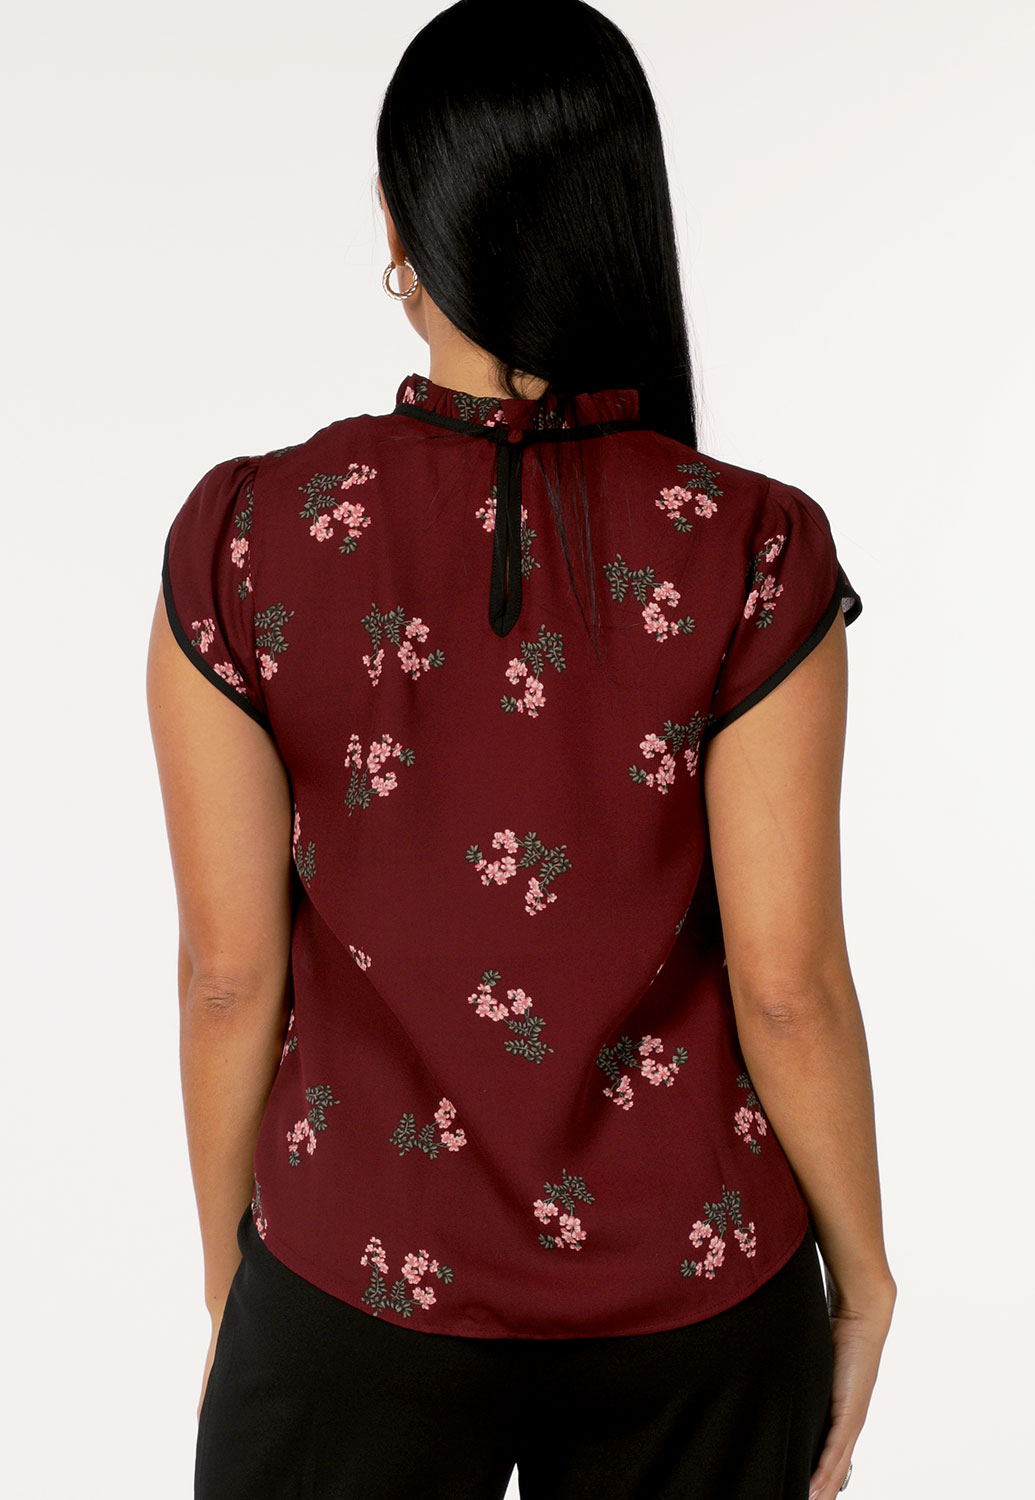 Floral Ruffle Trim Dressy Top